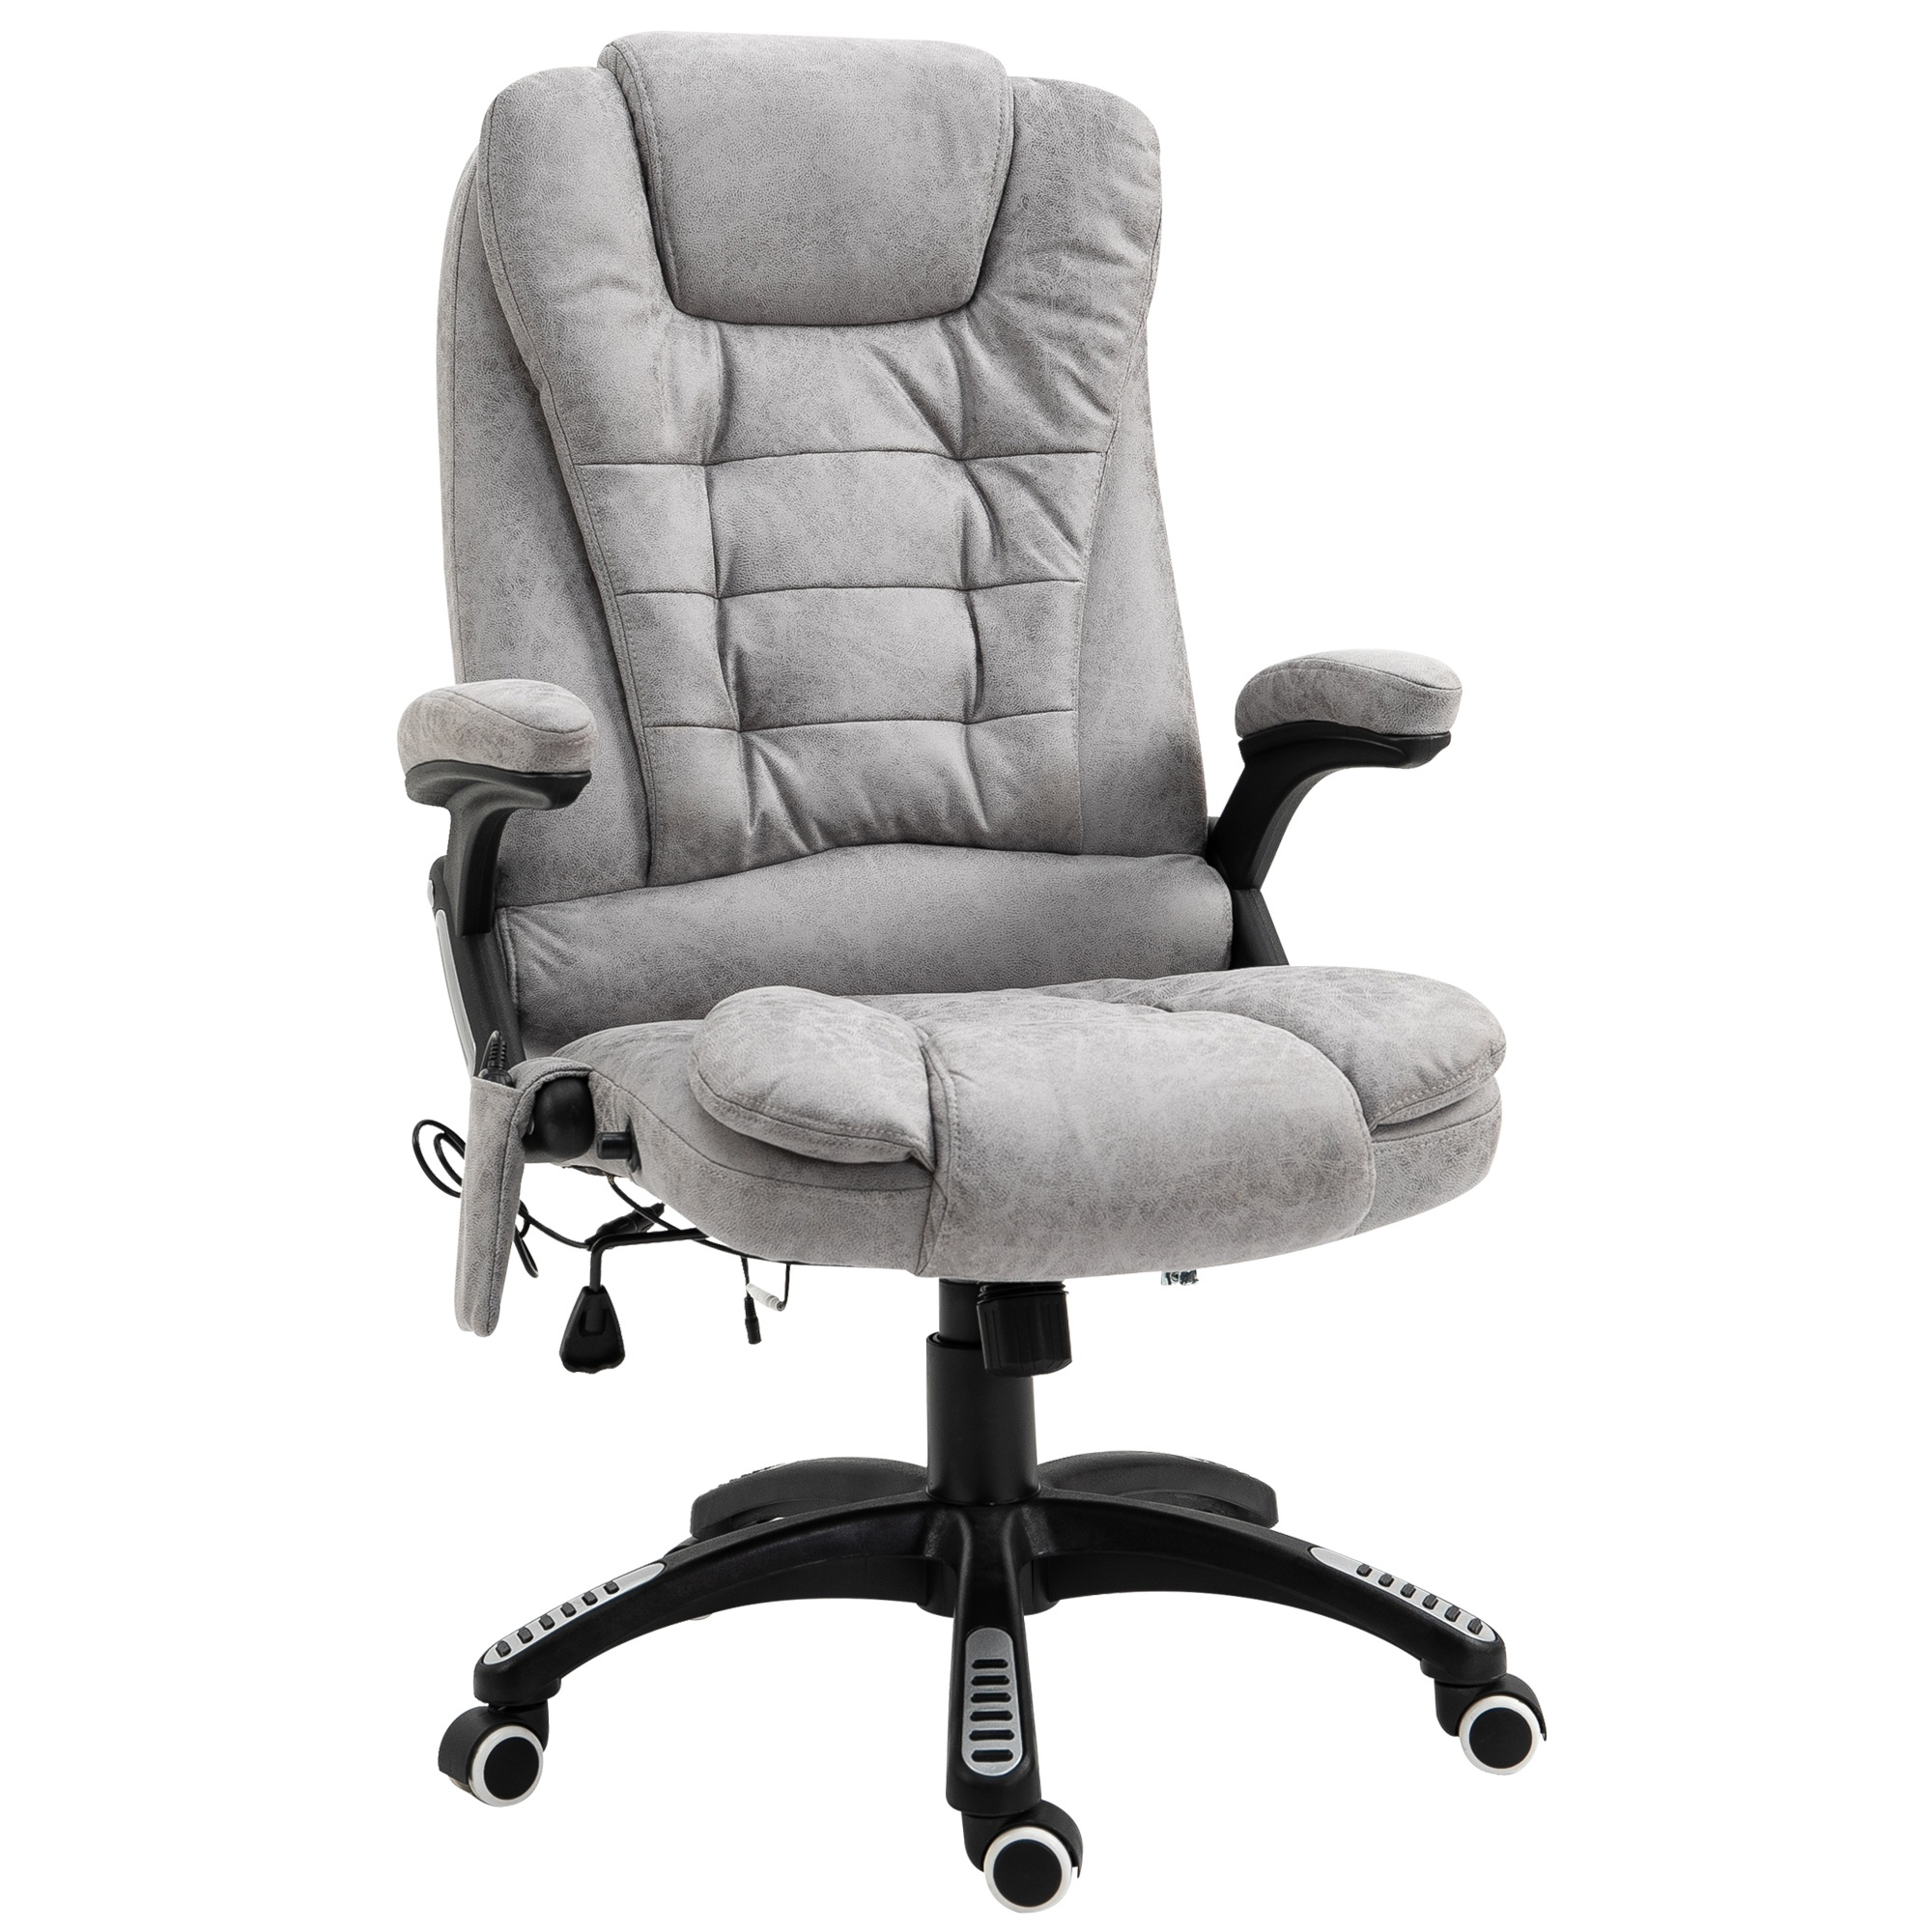 Office Chairs,Health & Beauty